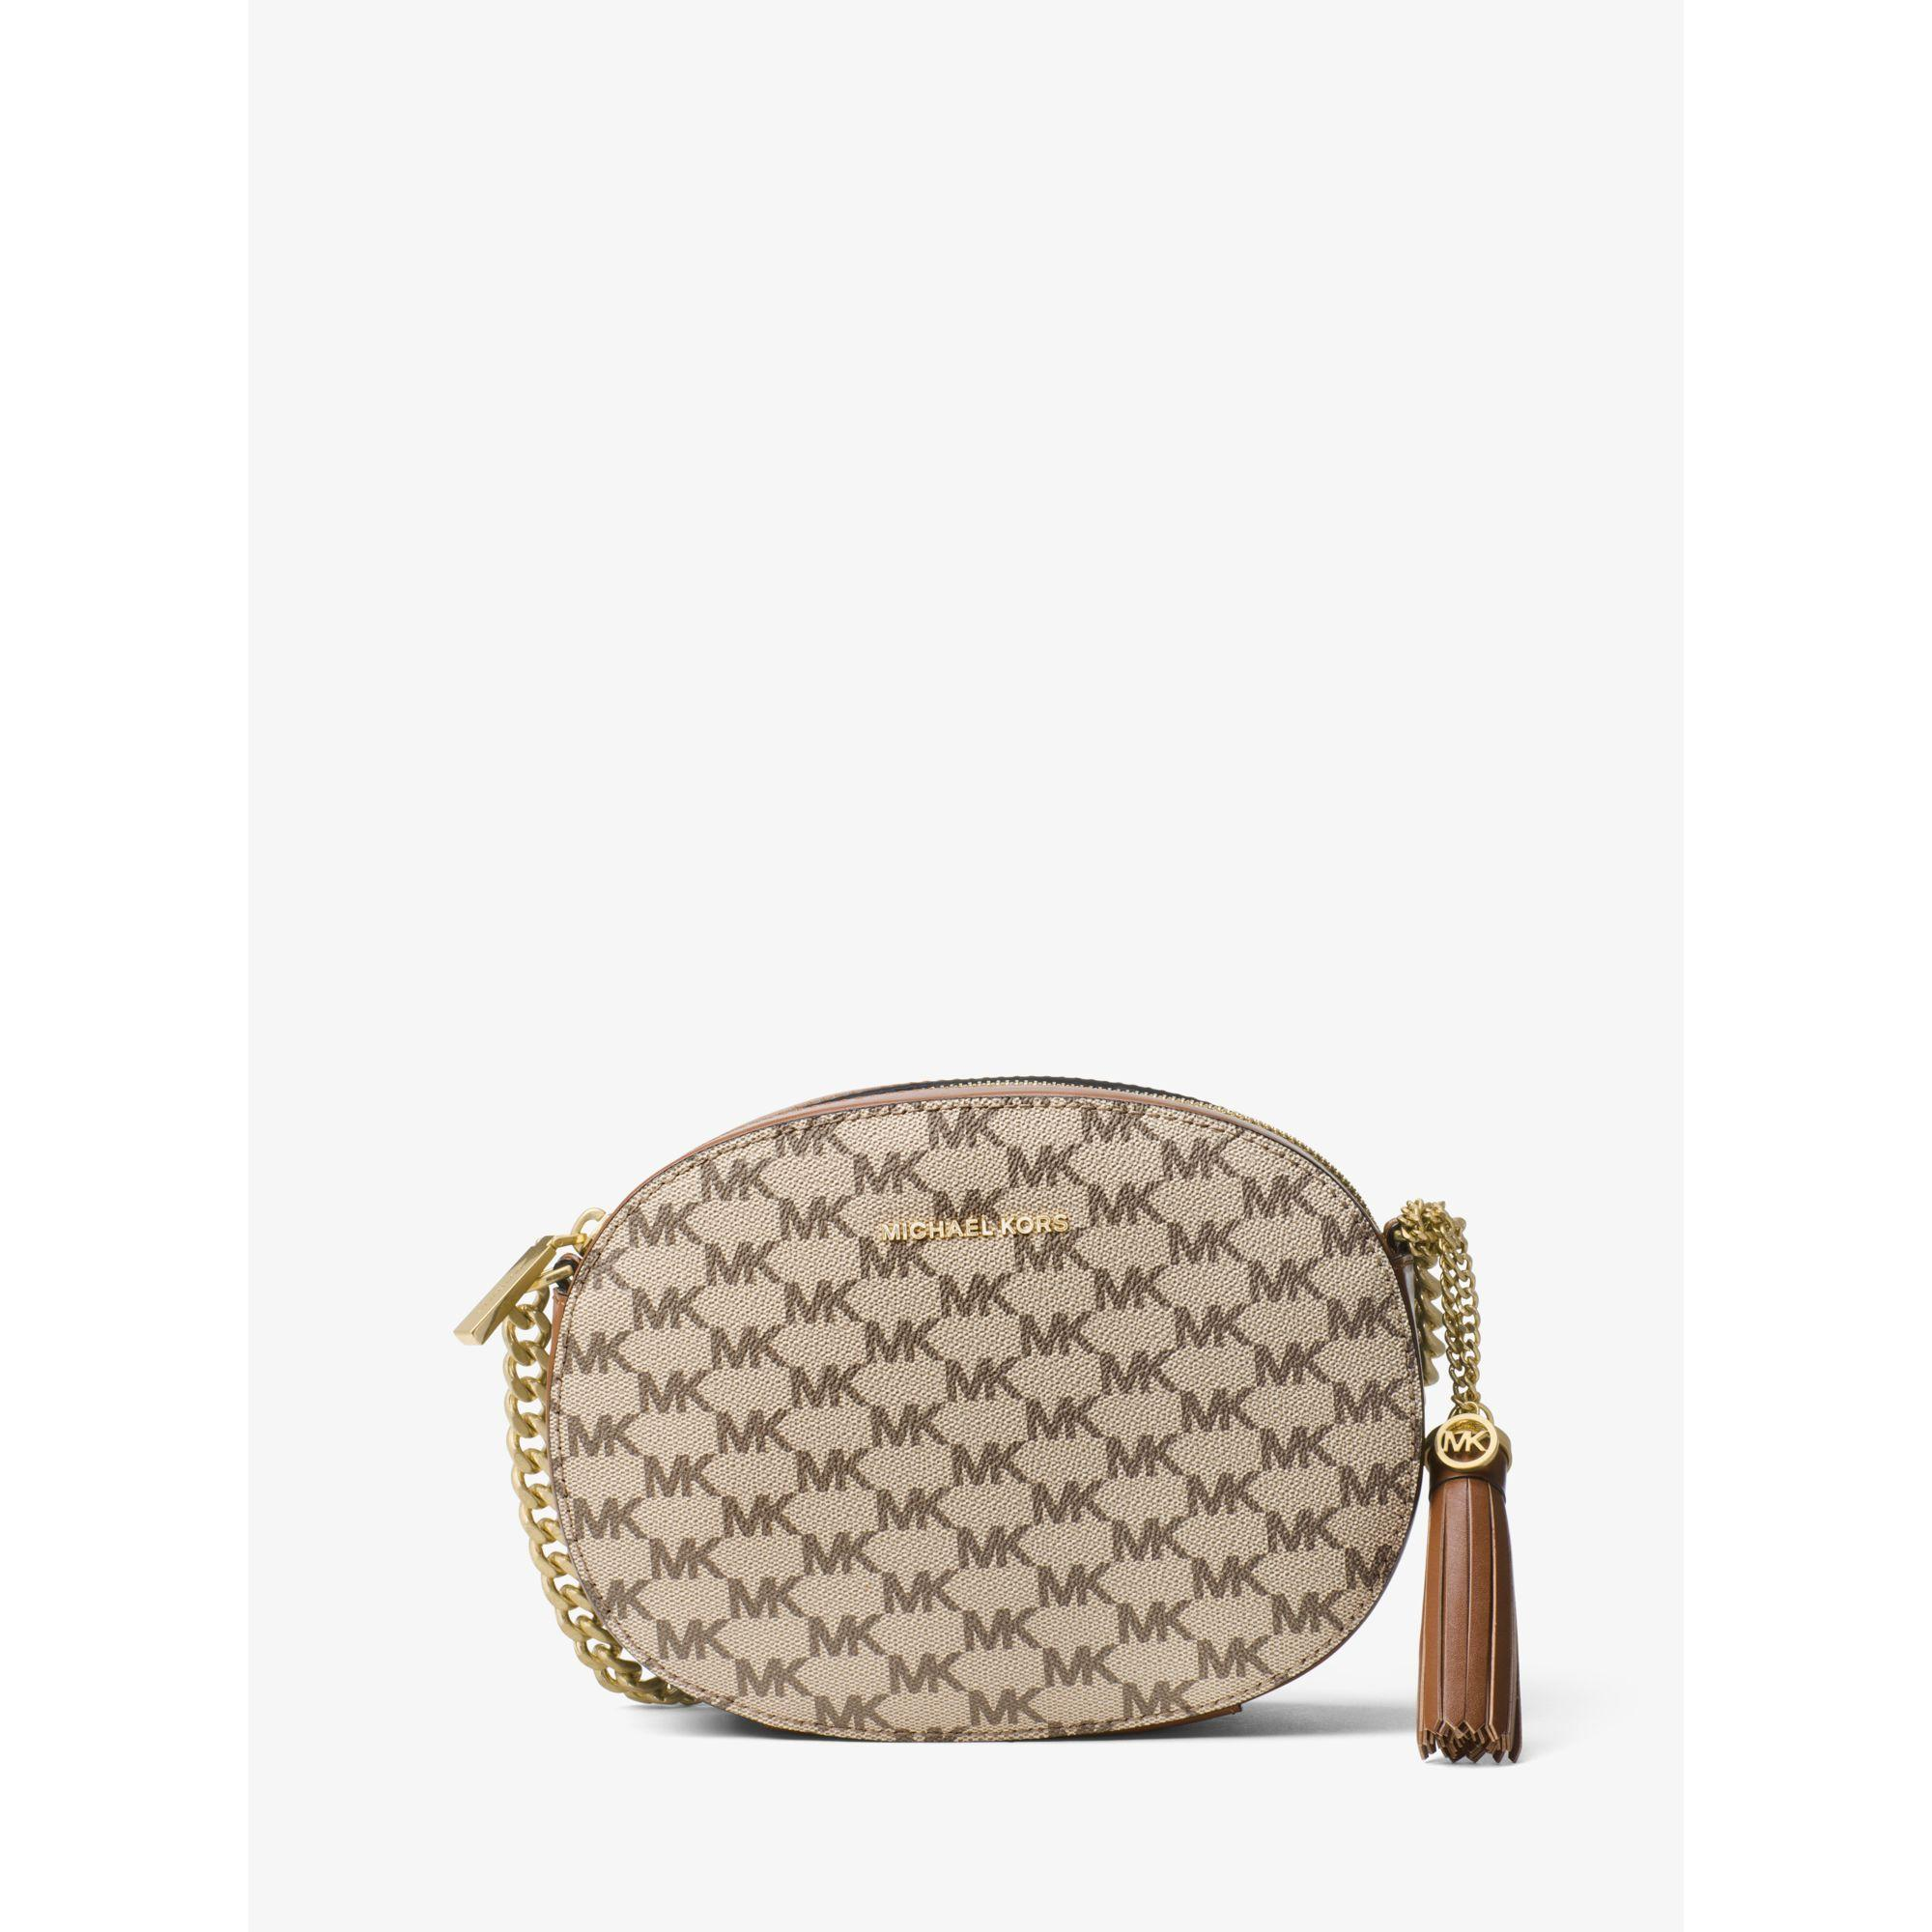 b5661da52522 Lyst - Michael Kors Ginny Medium Logo Crossbody